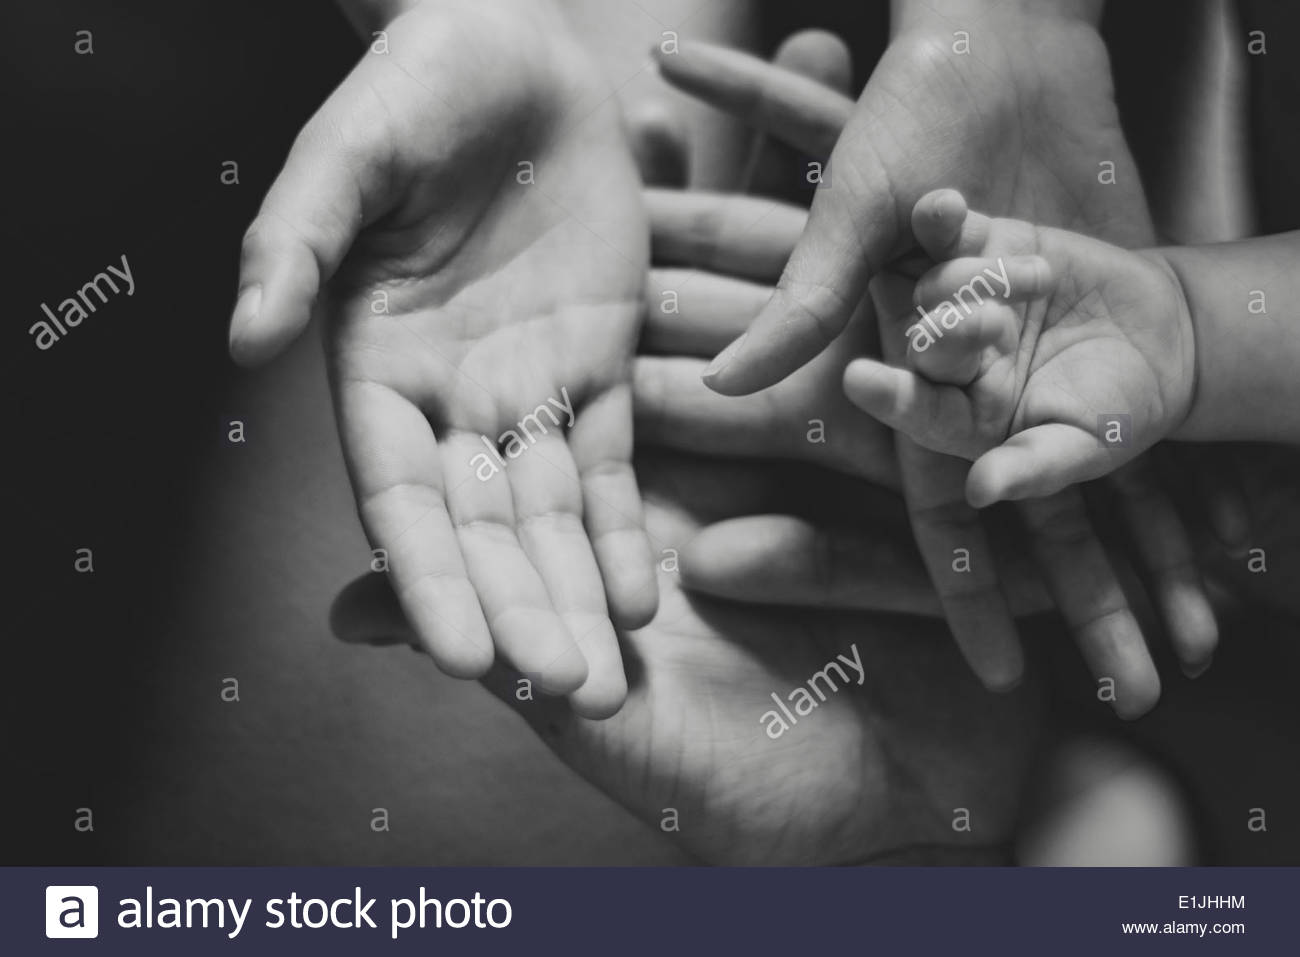 Black and white image of parents and female toddlers hands - Stock Image